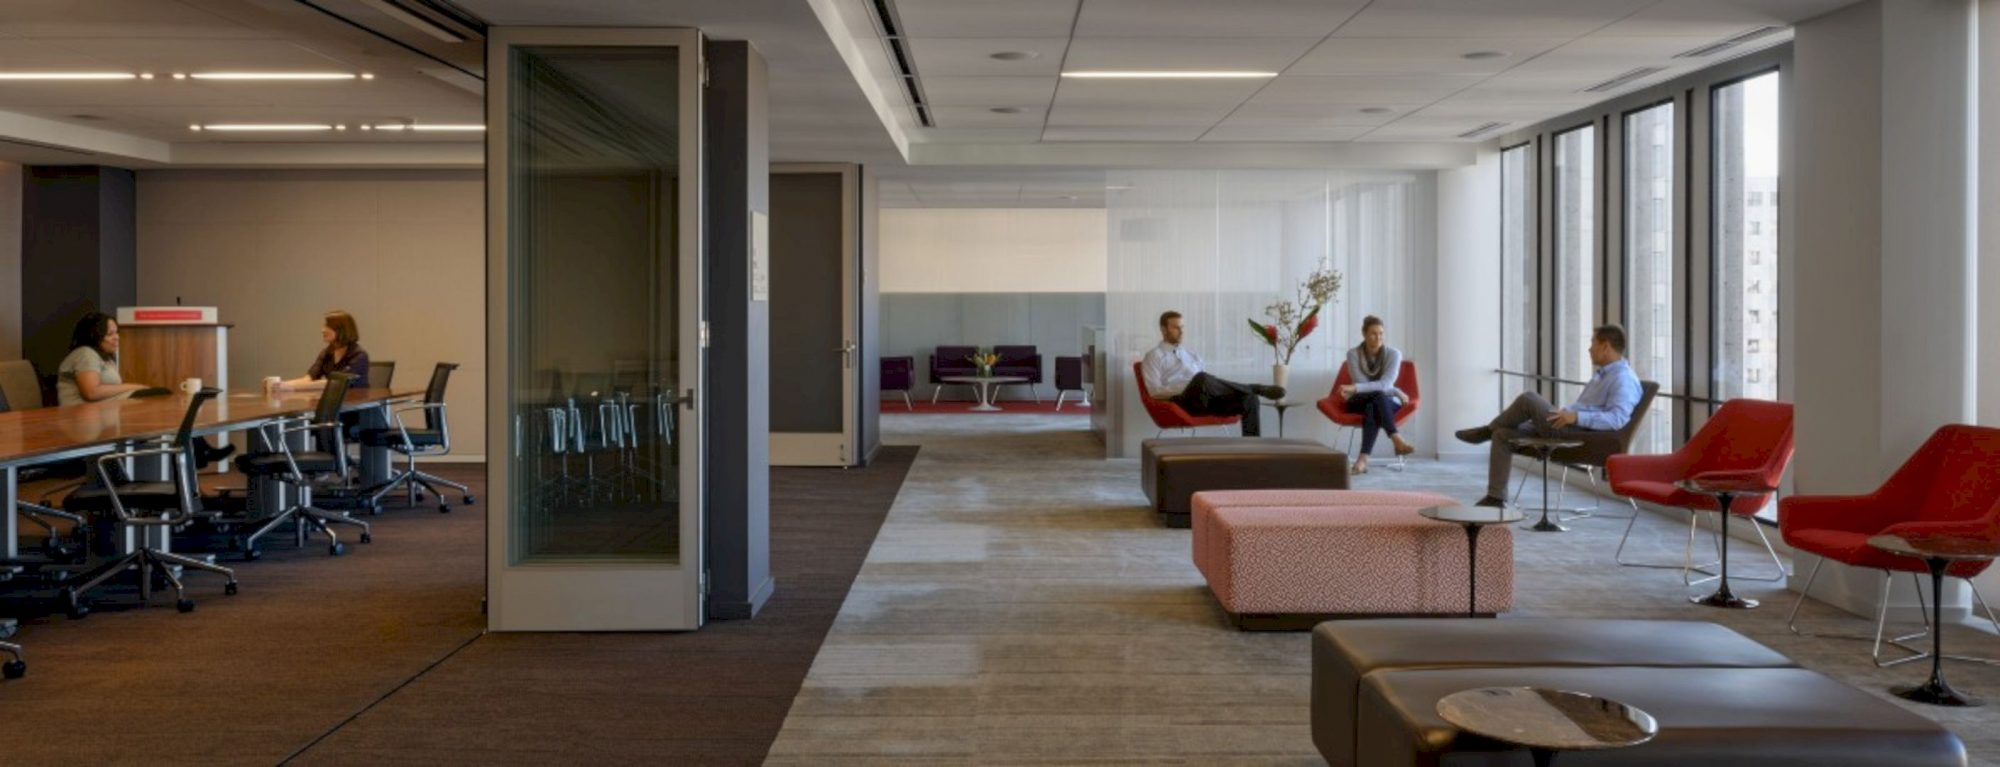 The San Francisco Foundation: A Contemporary Office with A Light-Filled Space